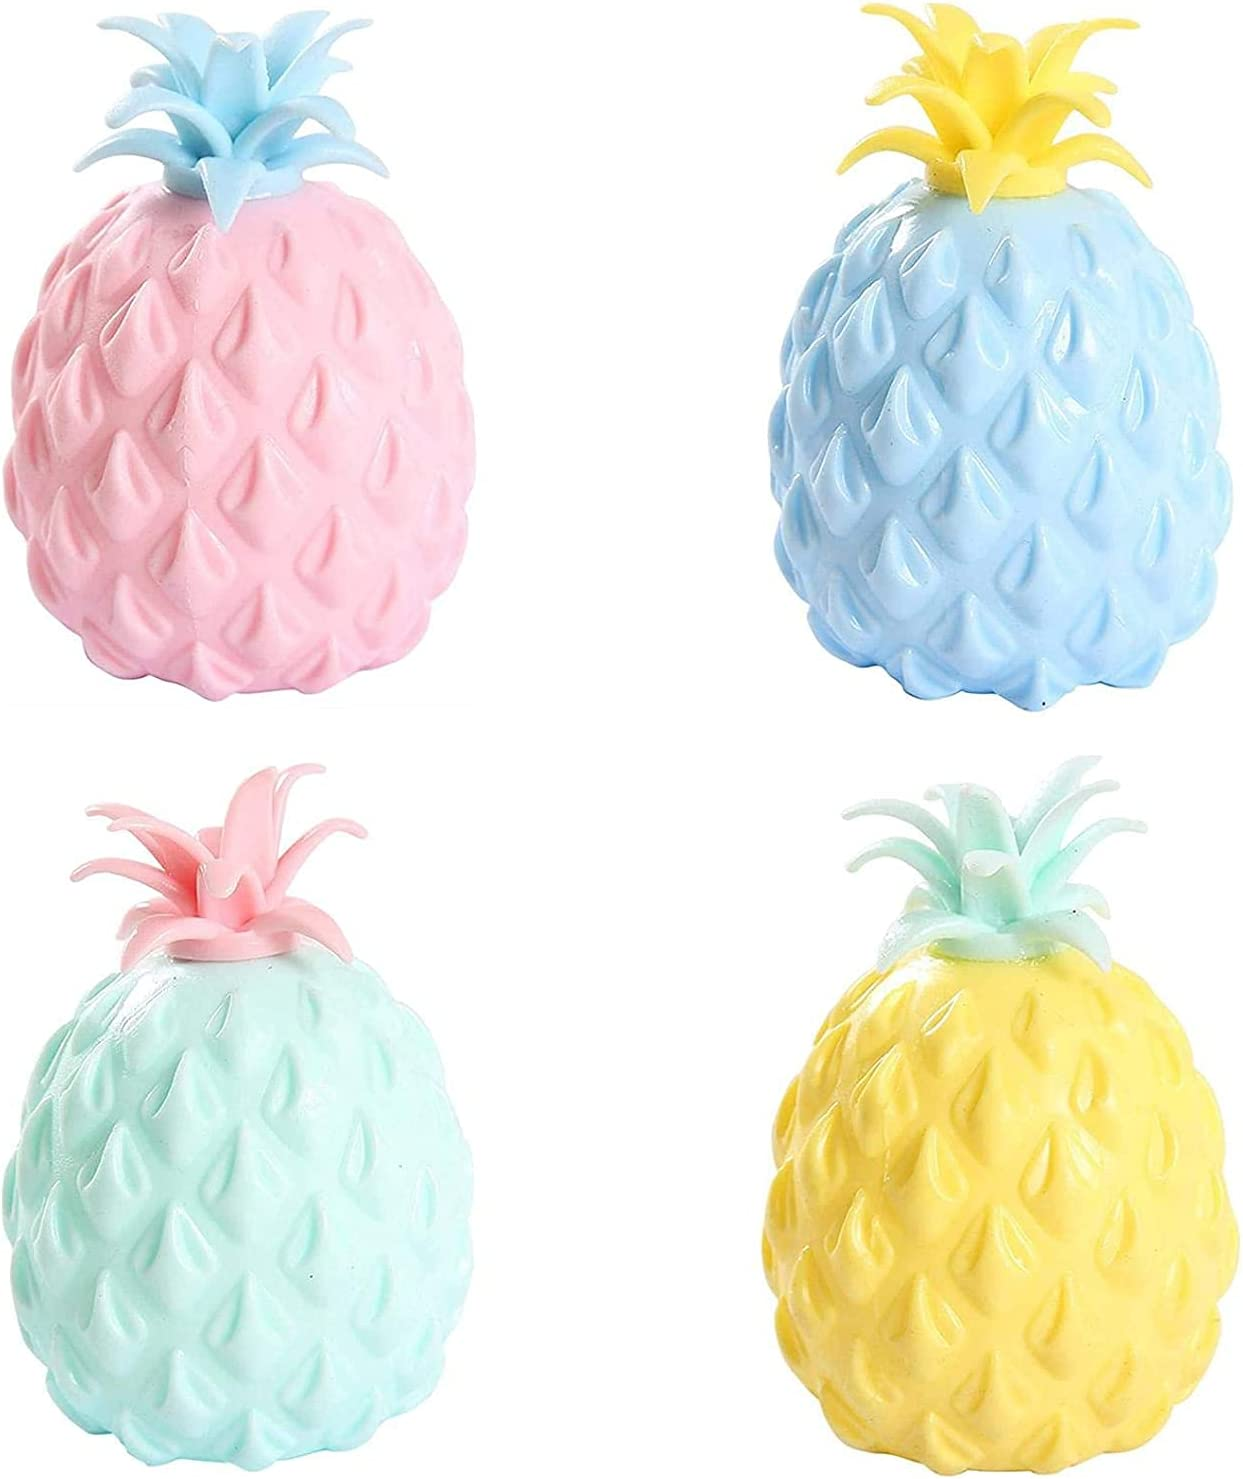 Pineapple Stress Ball, Squishy Stress Ball for Kids Adults, Sensory Fidget Toy, Hand Exercise Tool (4Pack)